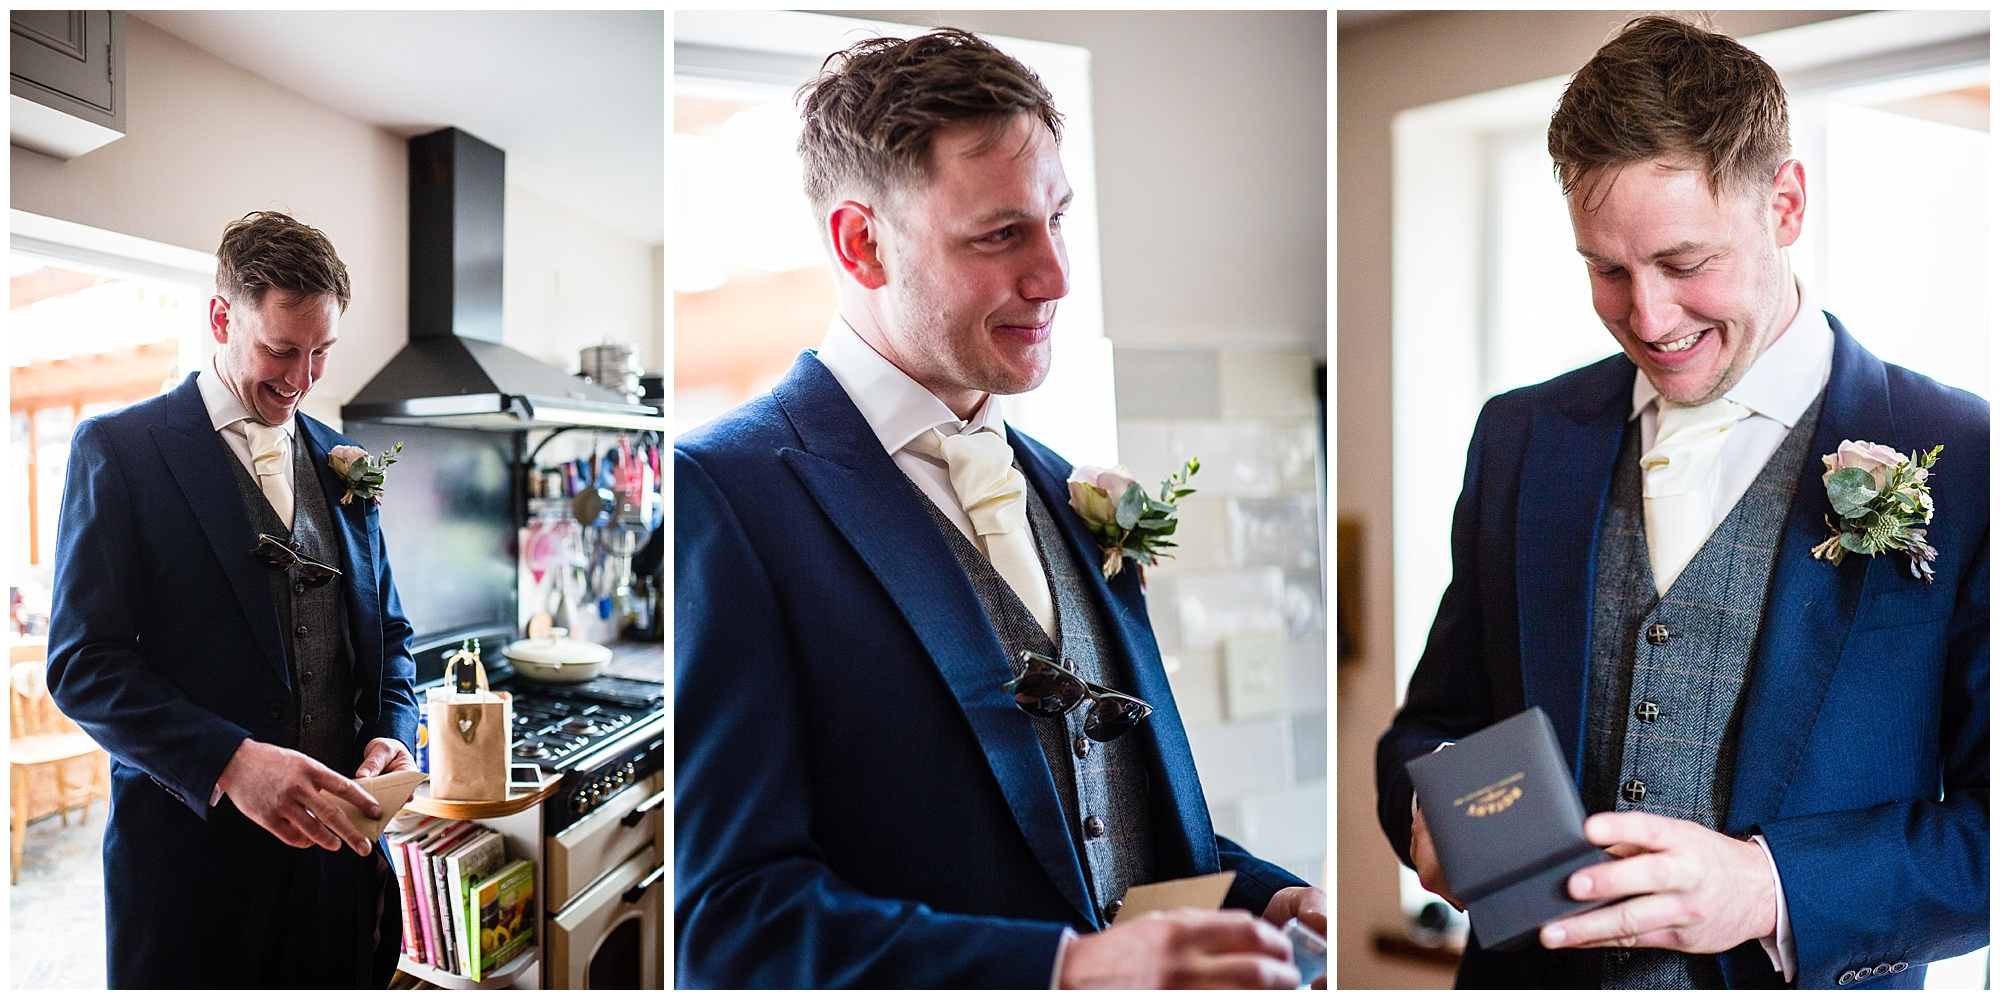 groom over whelmed after receiving pocket watch for wedding gift